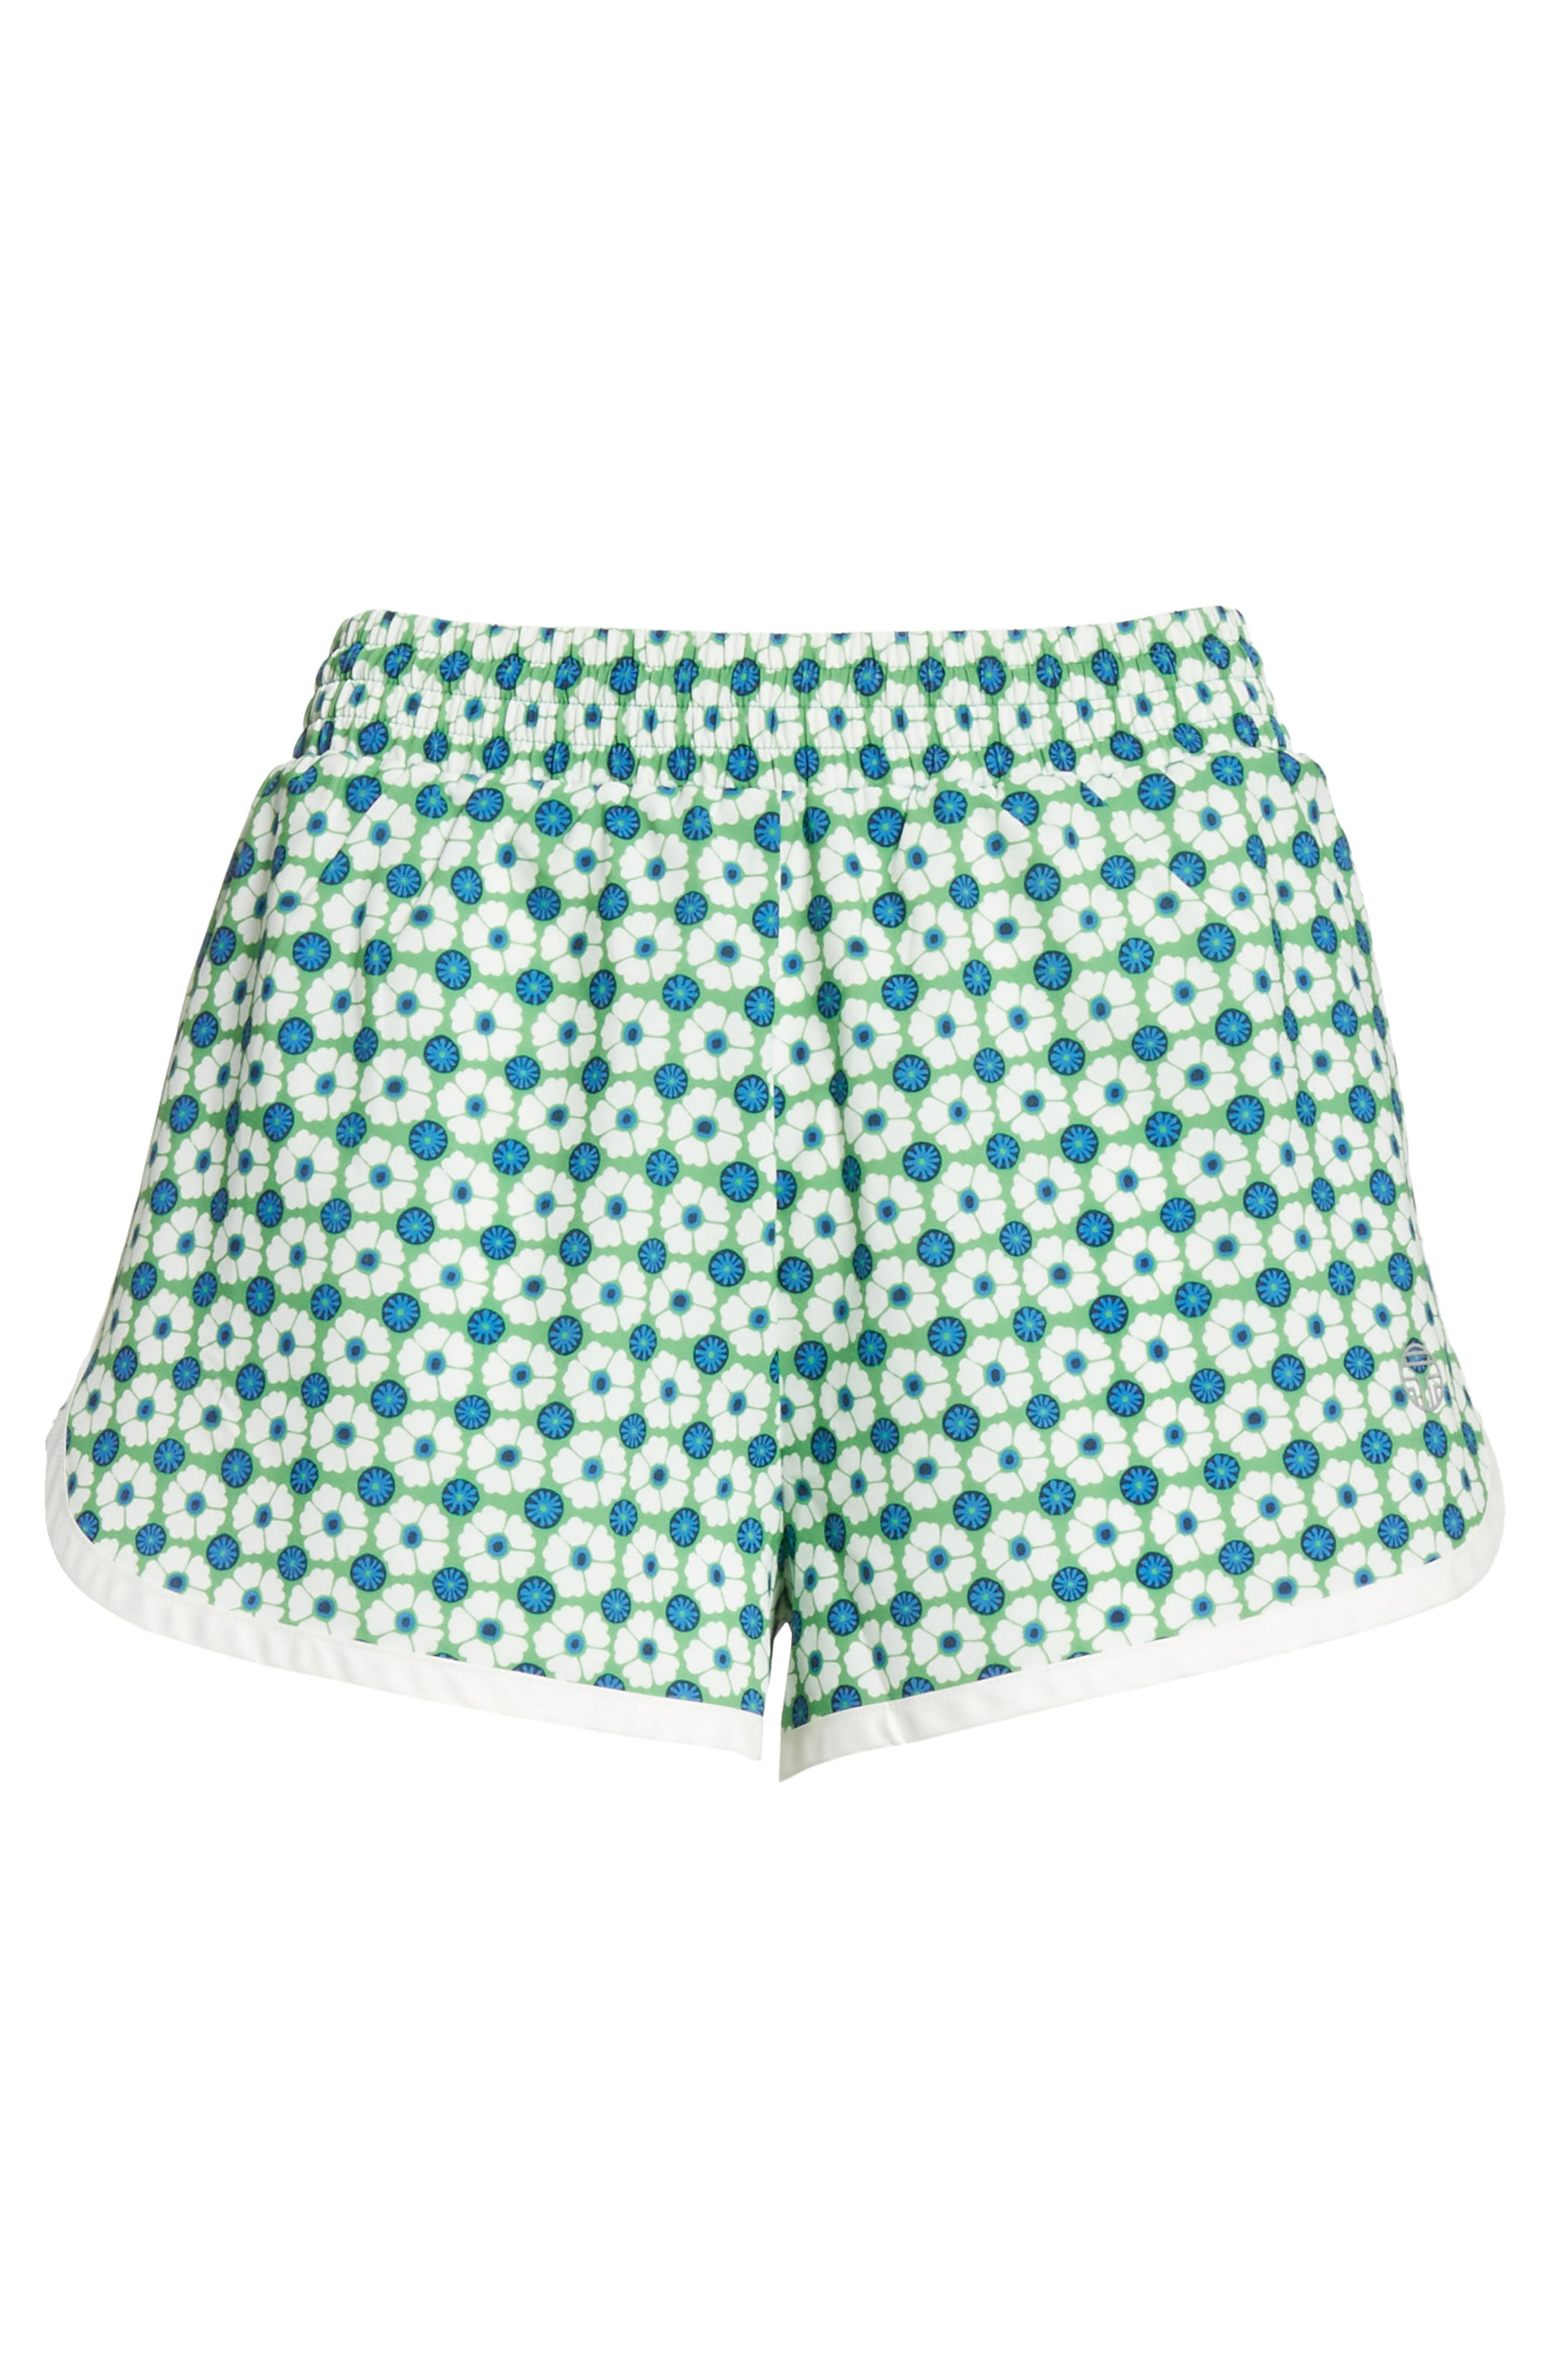 Print Running Shorts,                             Alternate thumbnail 6, color,                             Scarf Blue Floral